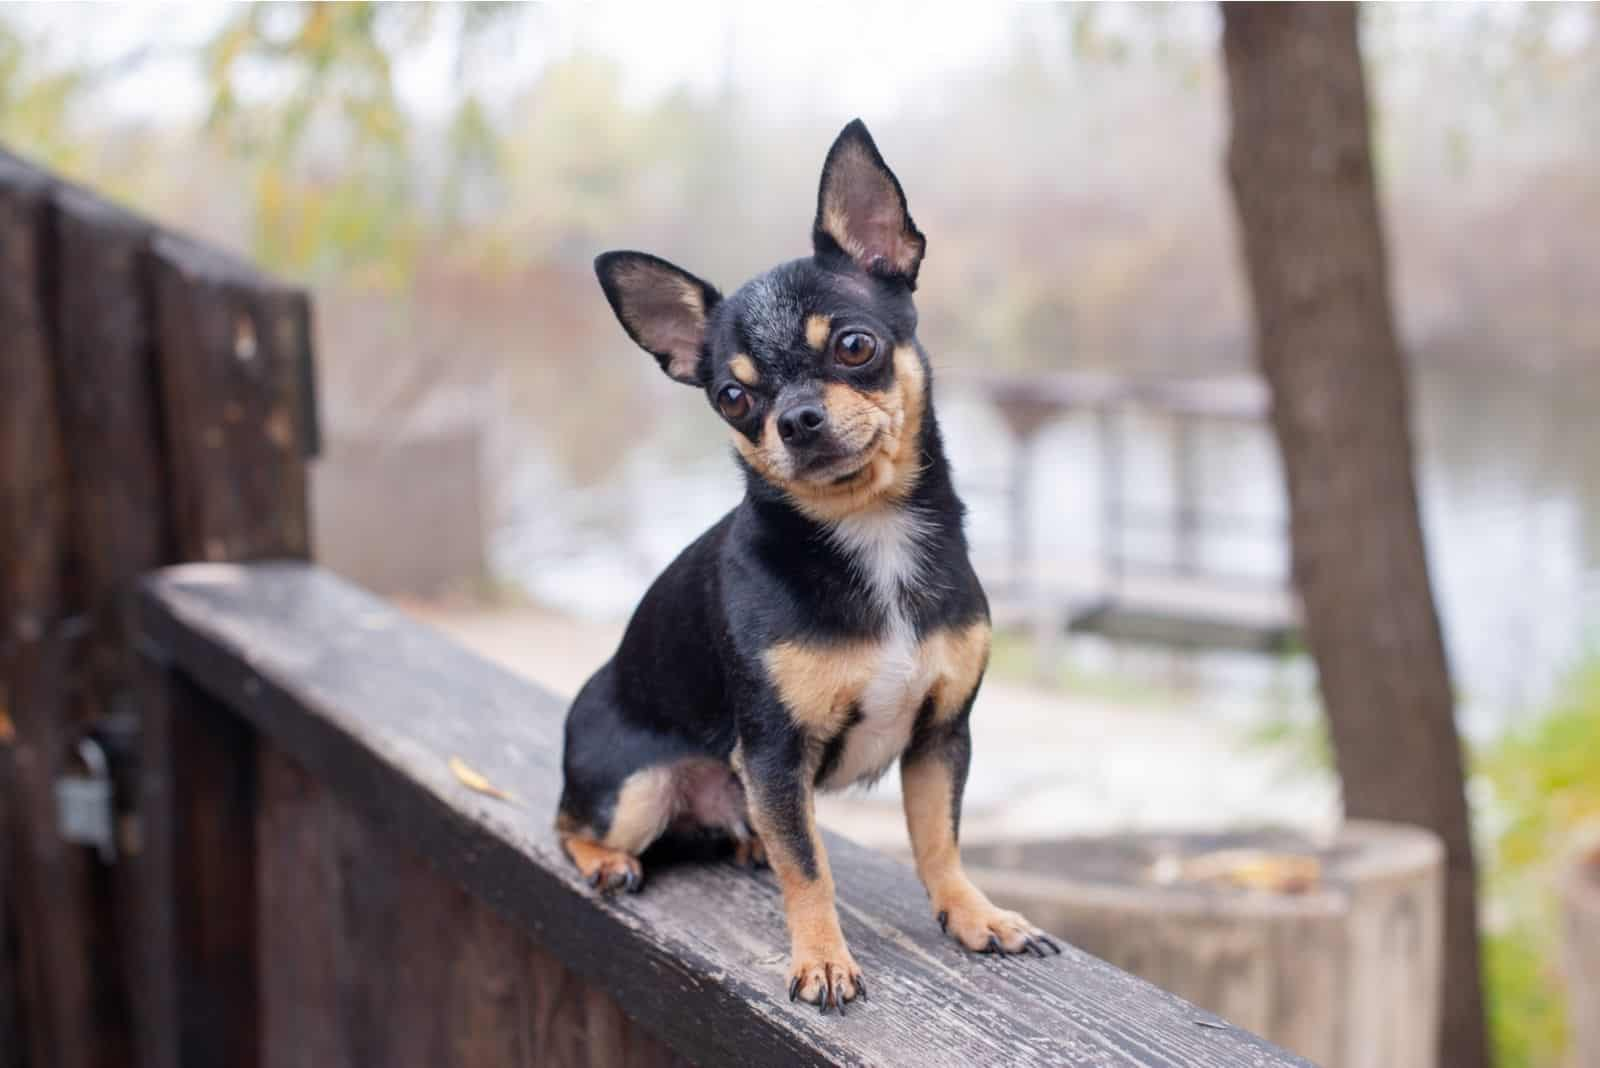 Pet dog Chihuahua on top of the wooden fence near the street